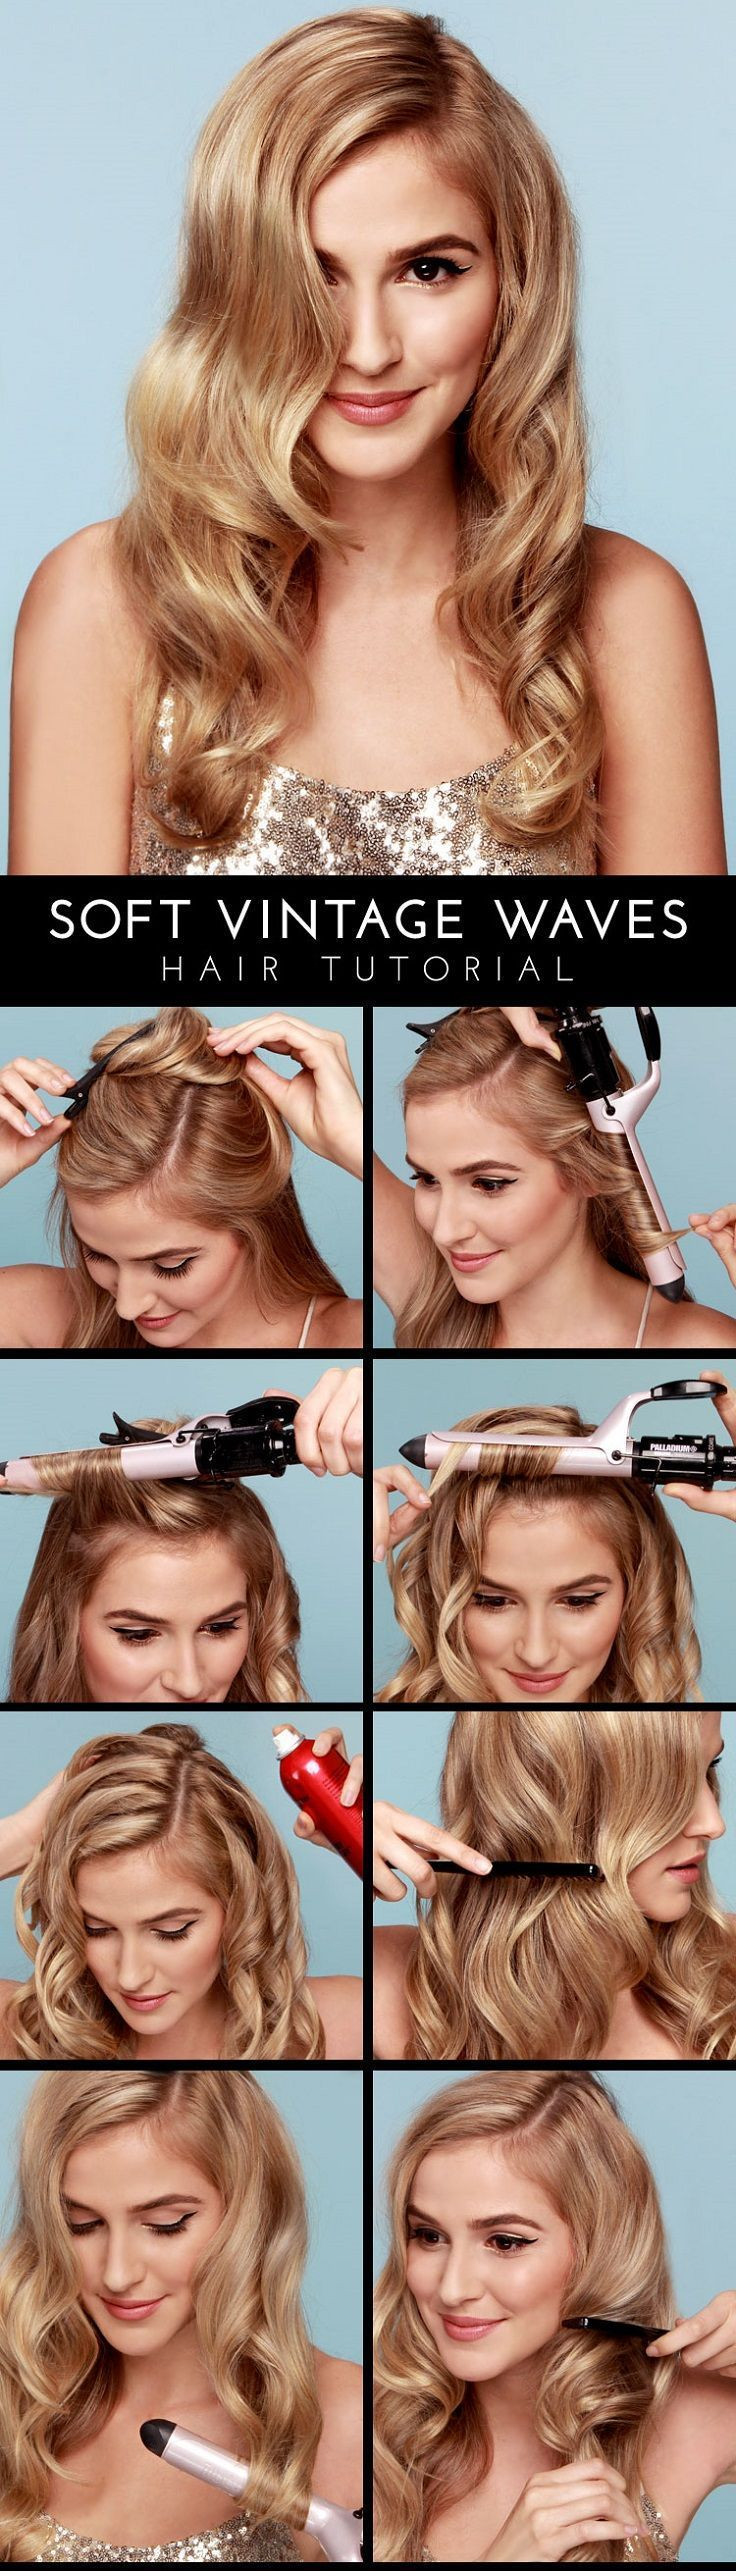 Top 10 Best Tutorials on How to Curl Your Hair With Flat Iron (scheduled via http://www.tailwindapp.com?utm_source=pinterest&utm_medium=twpin&utm_content=post1136671&utm_campaign=scheduler_attribution)